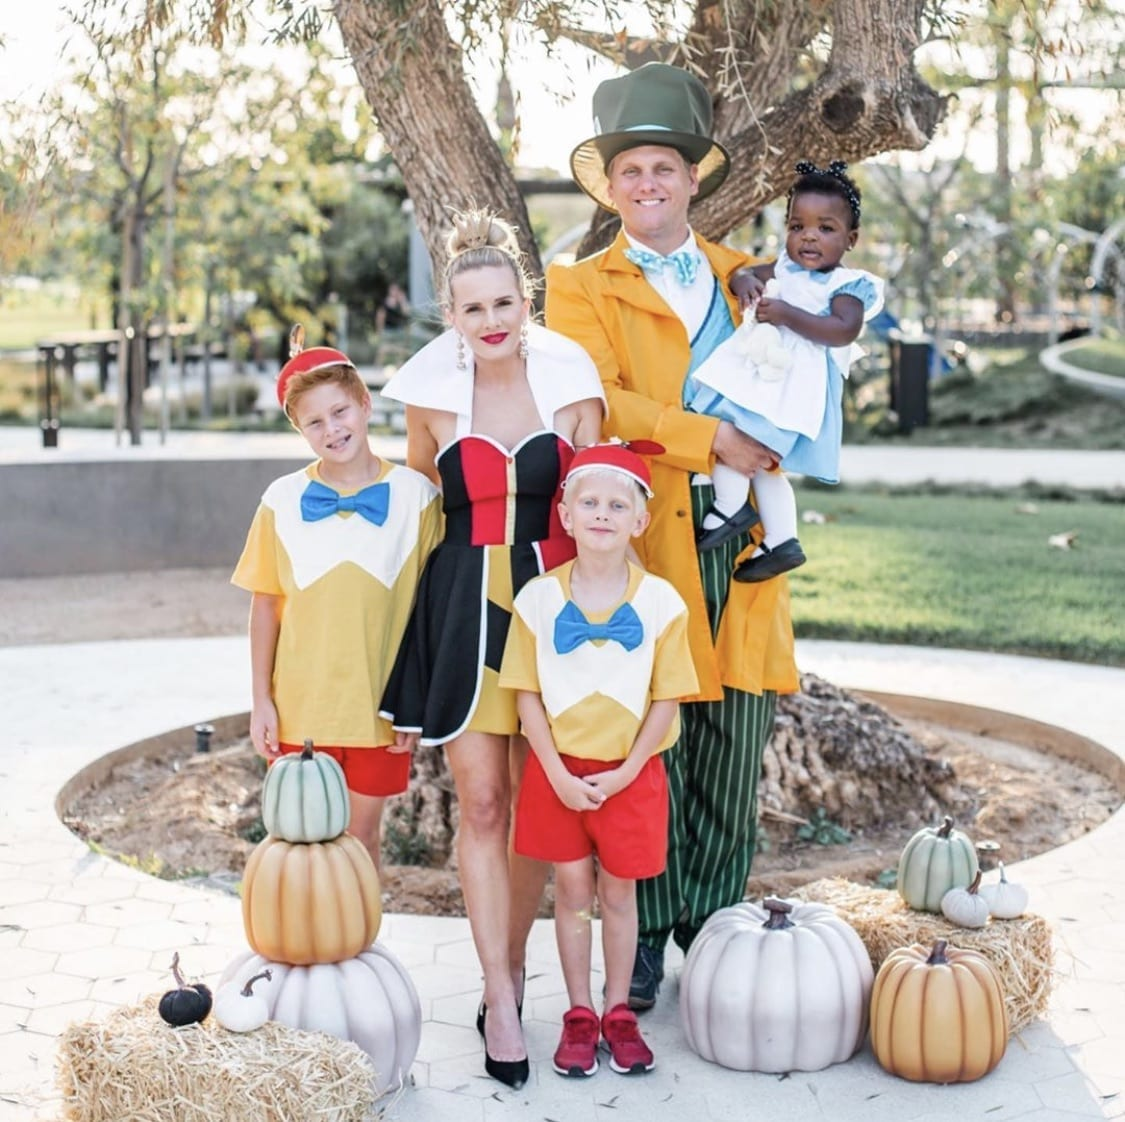 Family dressed up as the characters from Alice in Wonderland for Halloween.